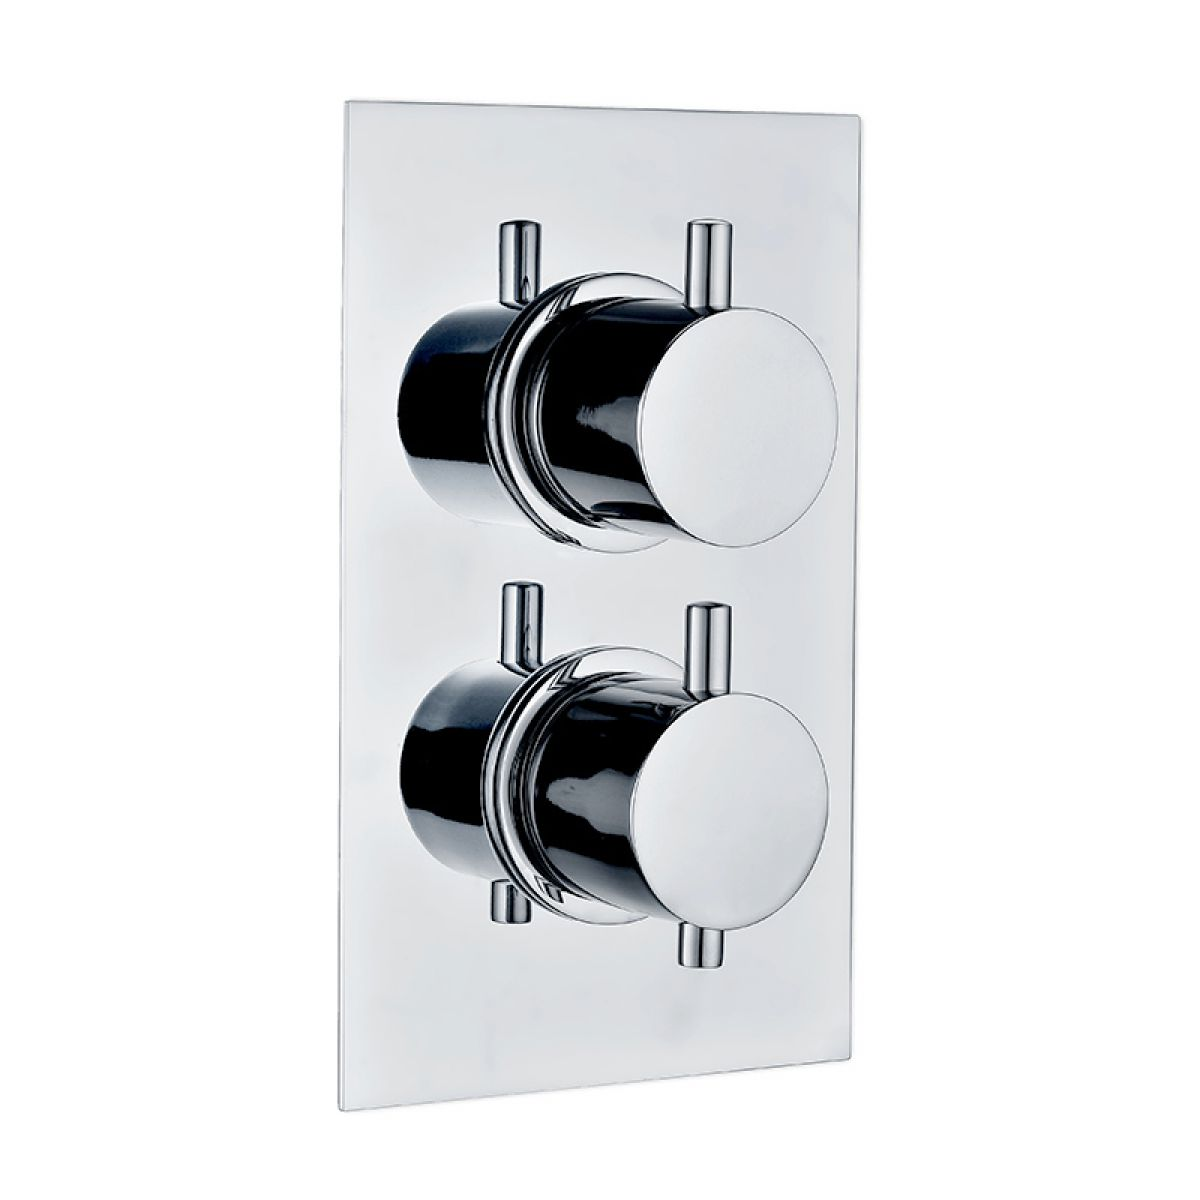 concealed outlet valves plate with thermostatic triple diverter ufg slim kubix valve shower